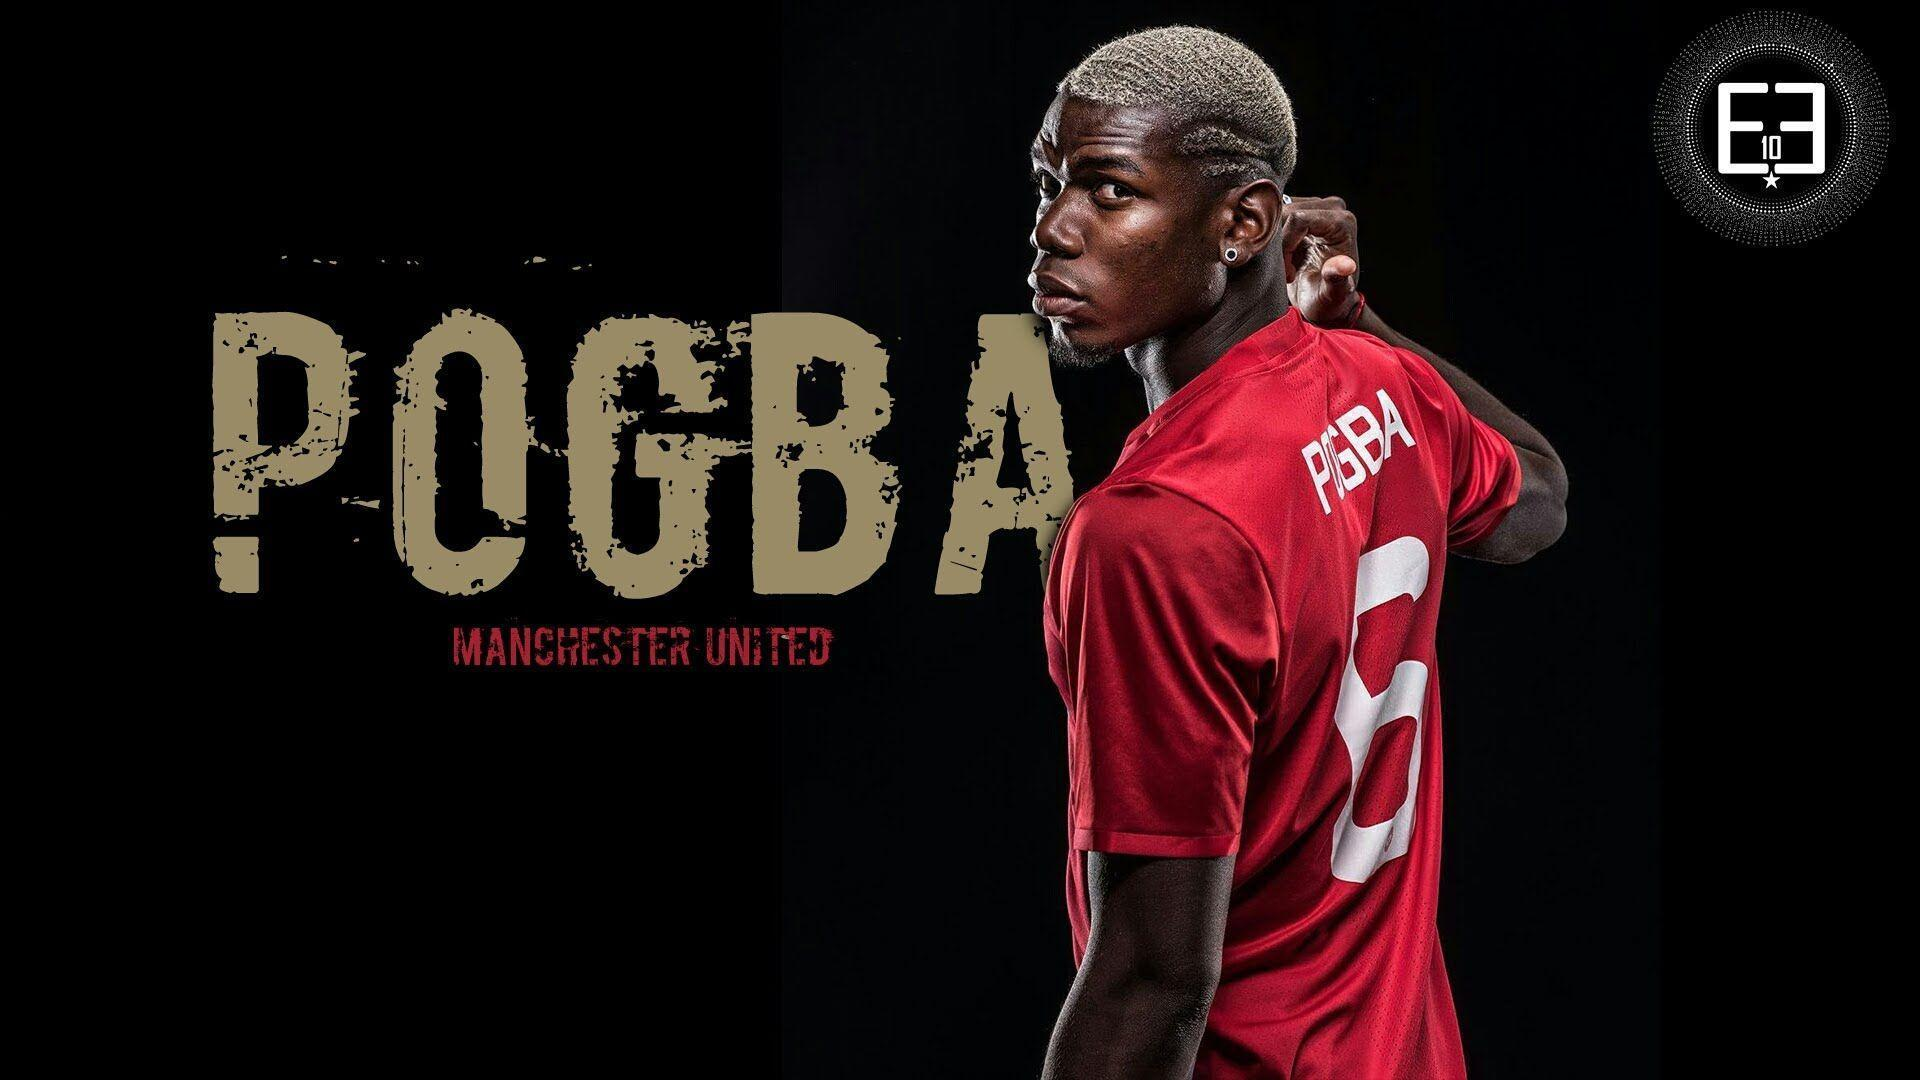 Manchester United Players 2017 Wallpapers